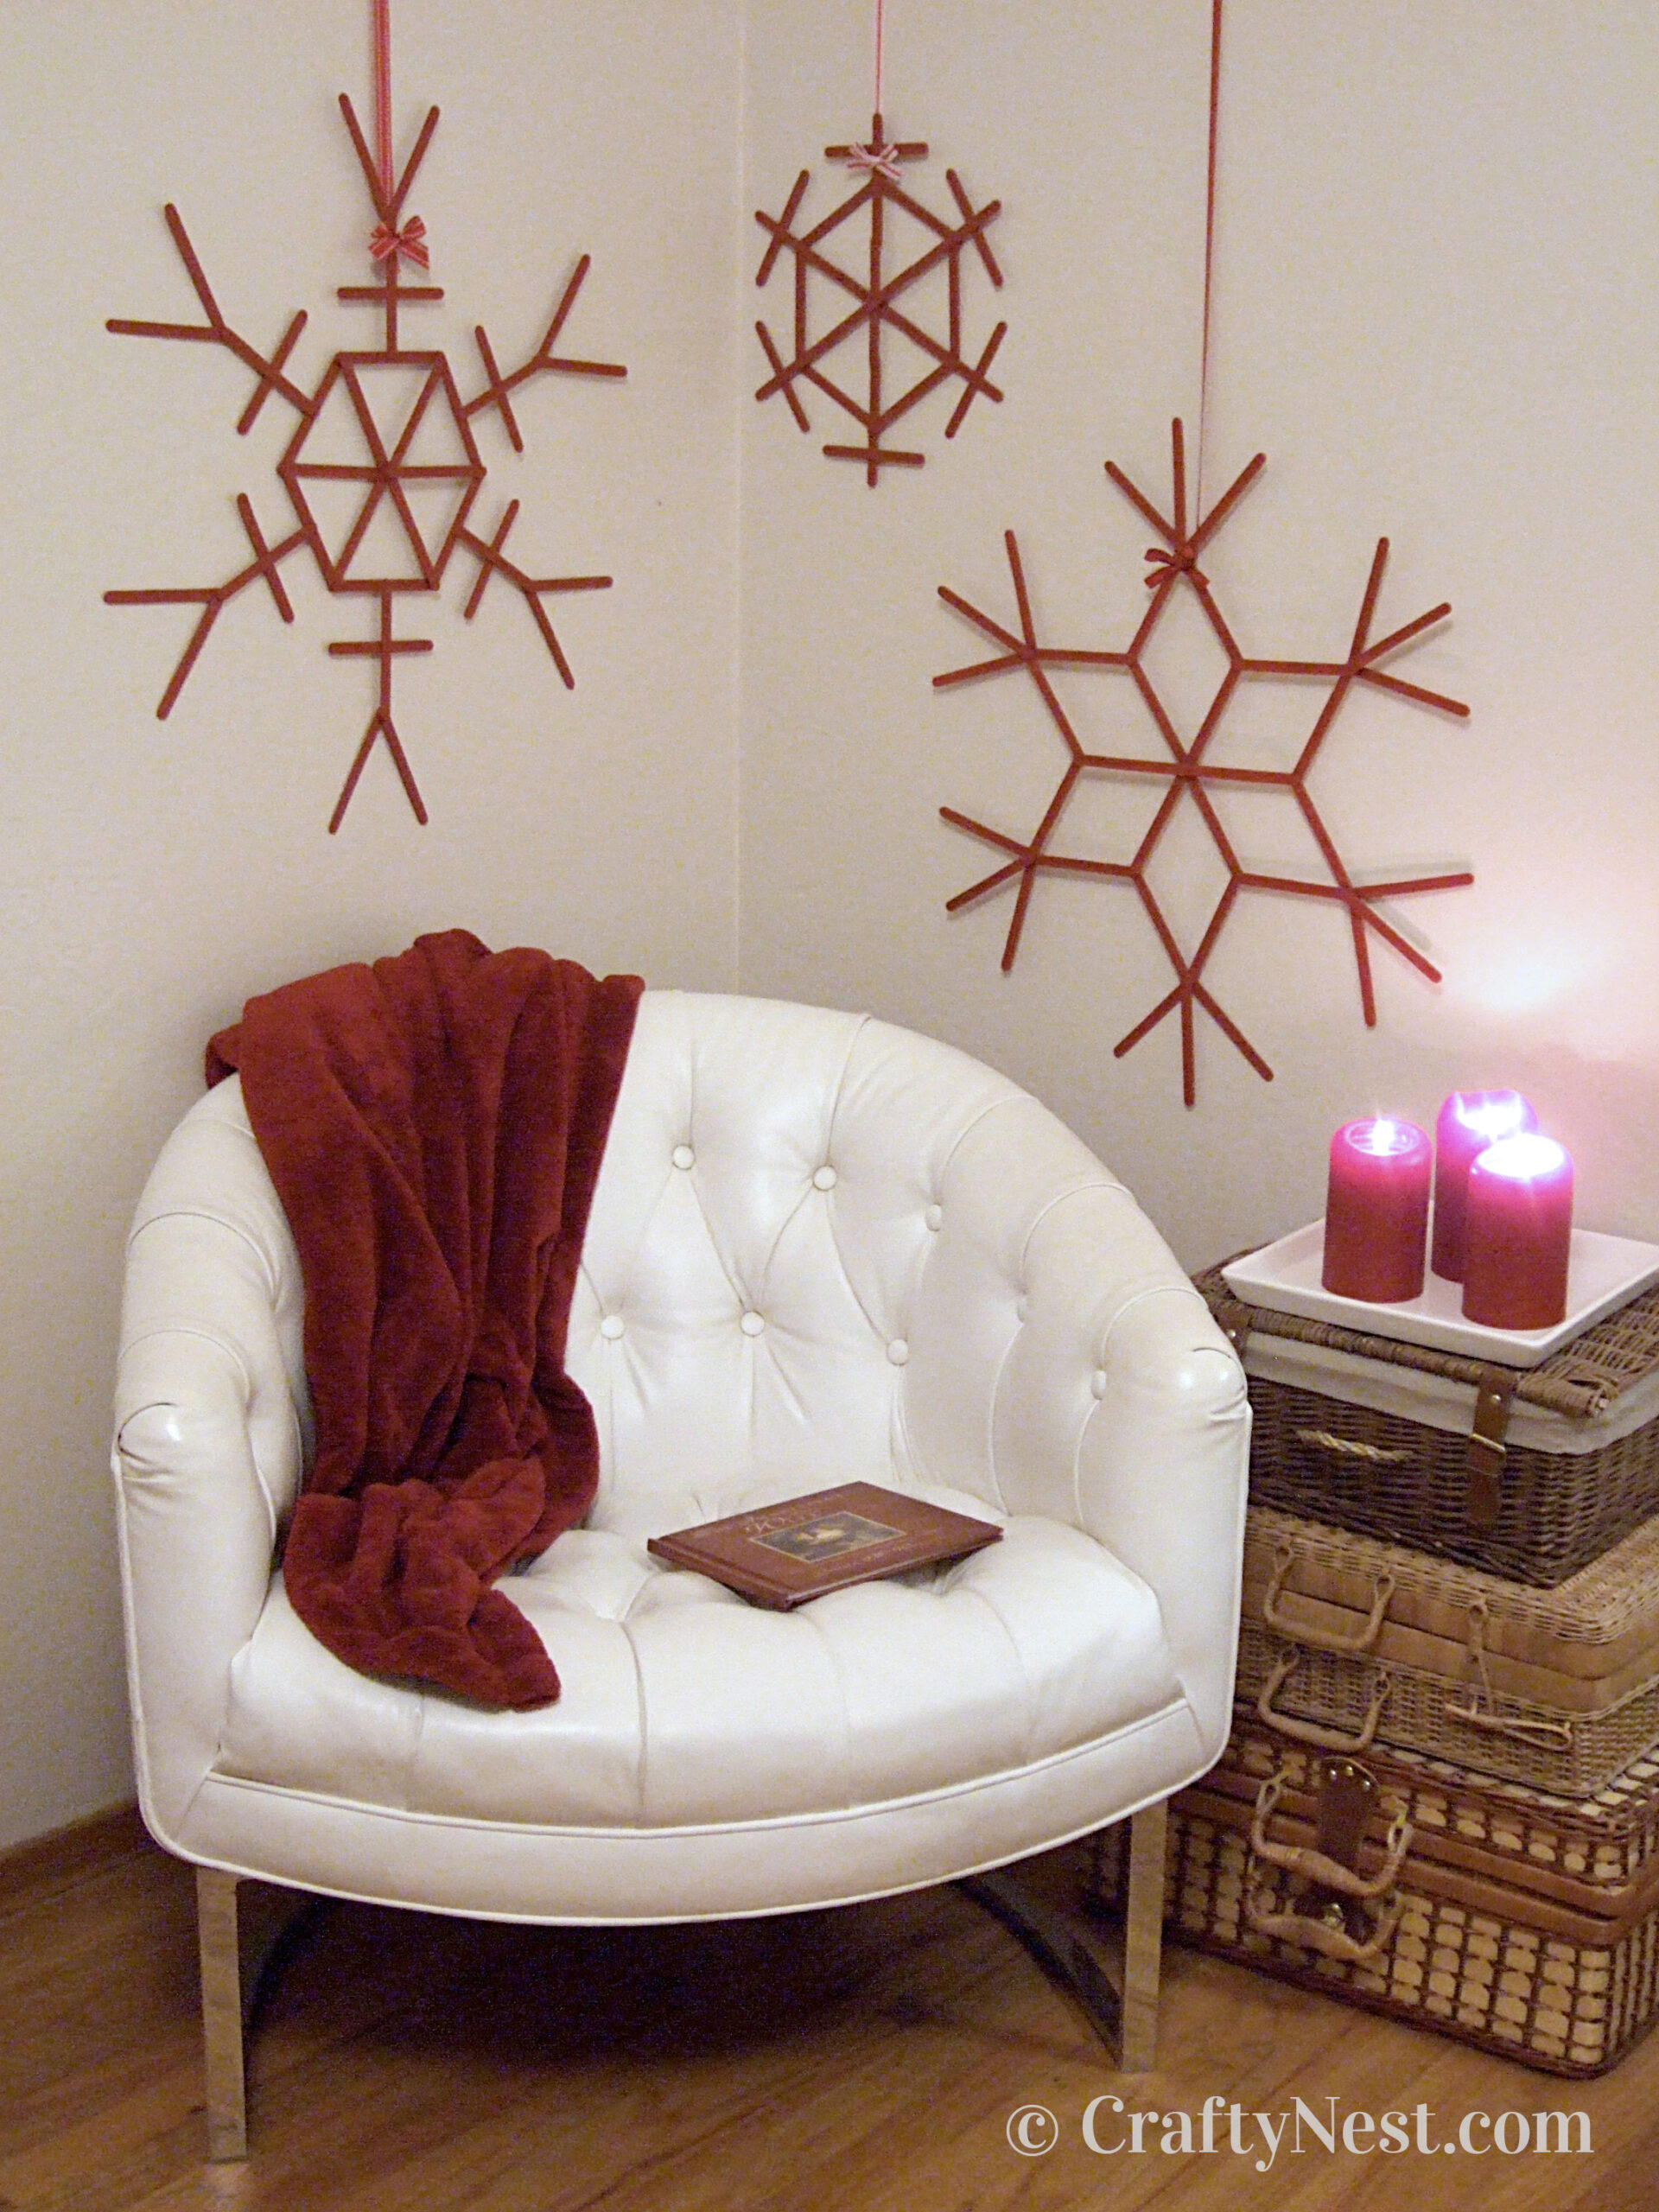 Red craft-stick snowflakes on wall, photo